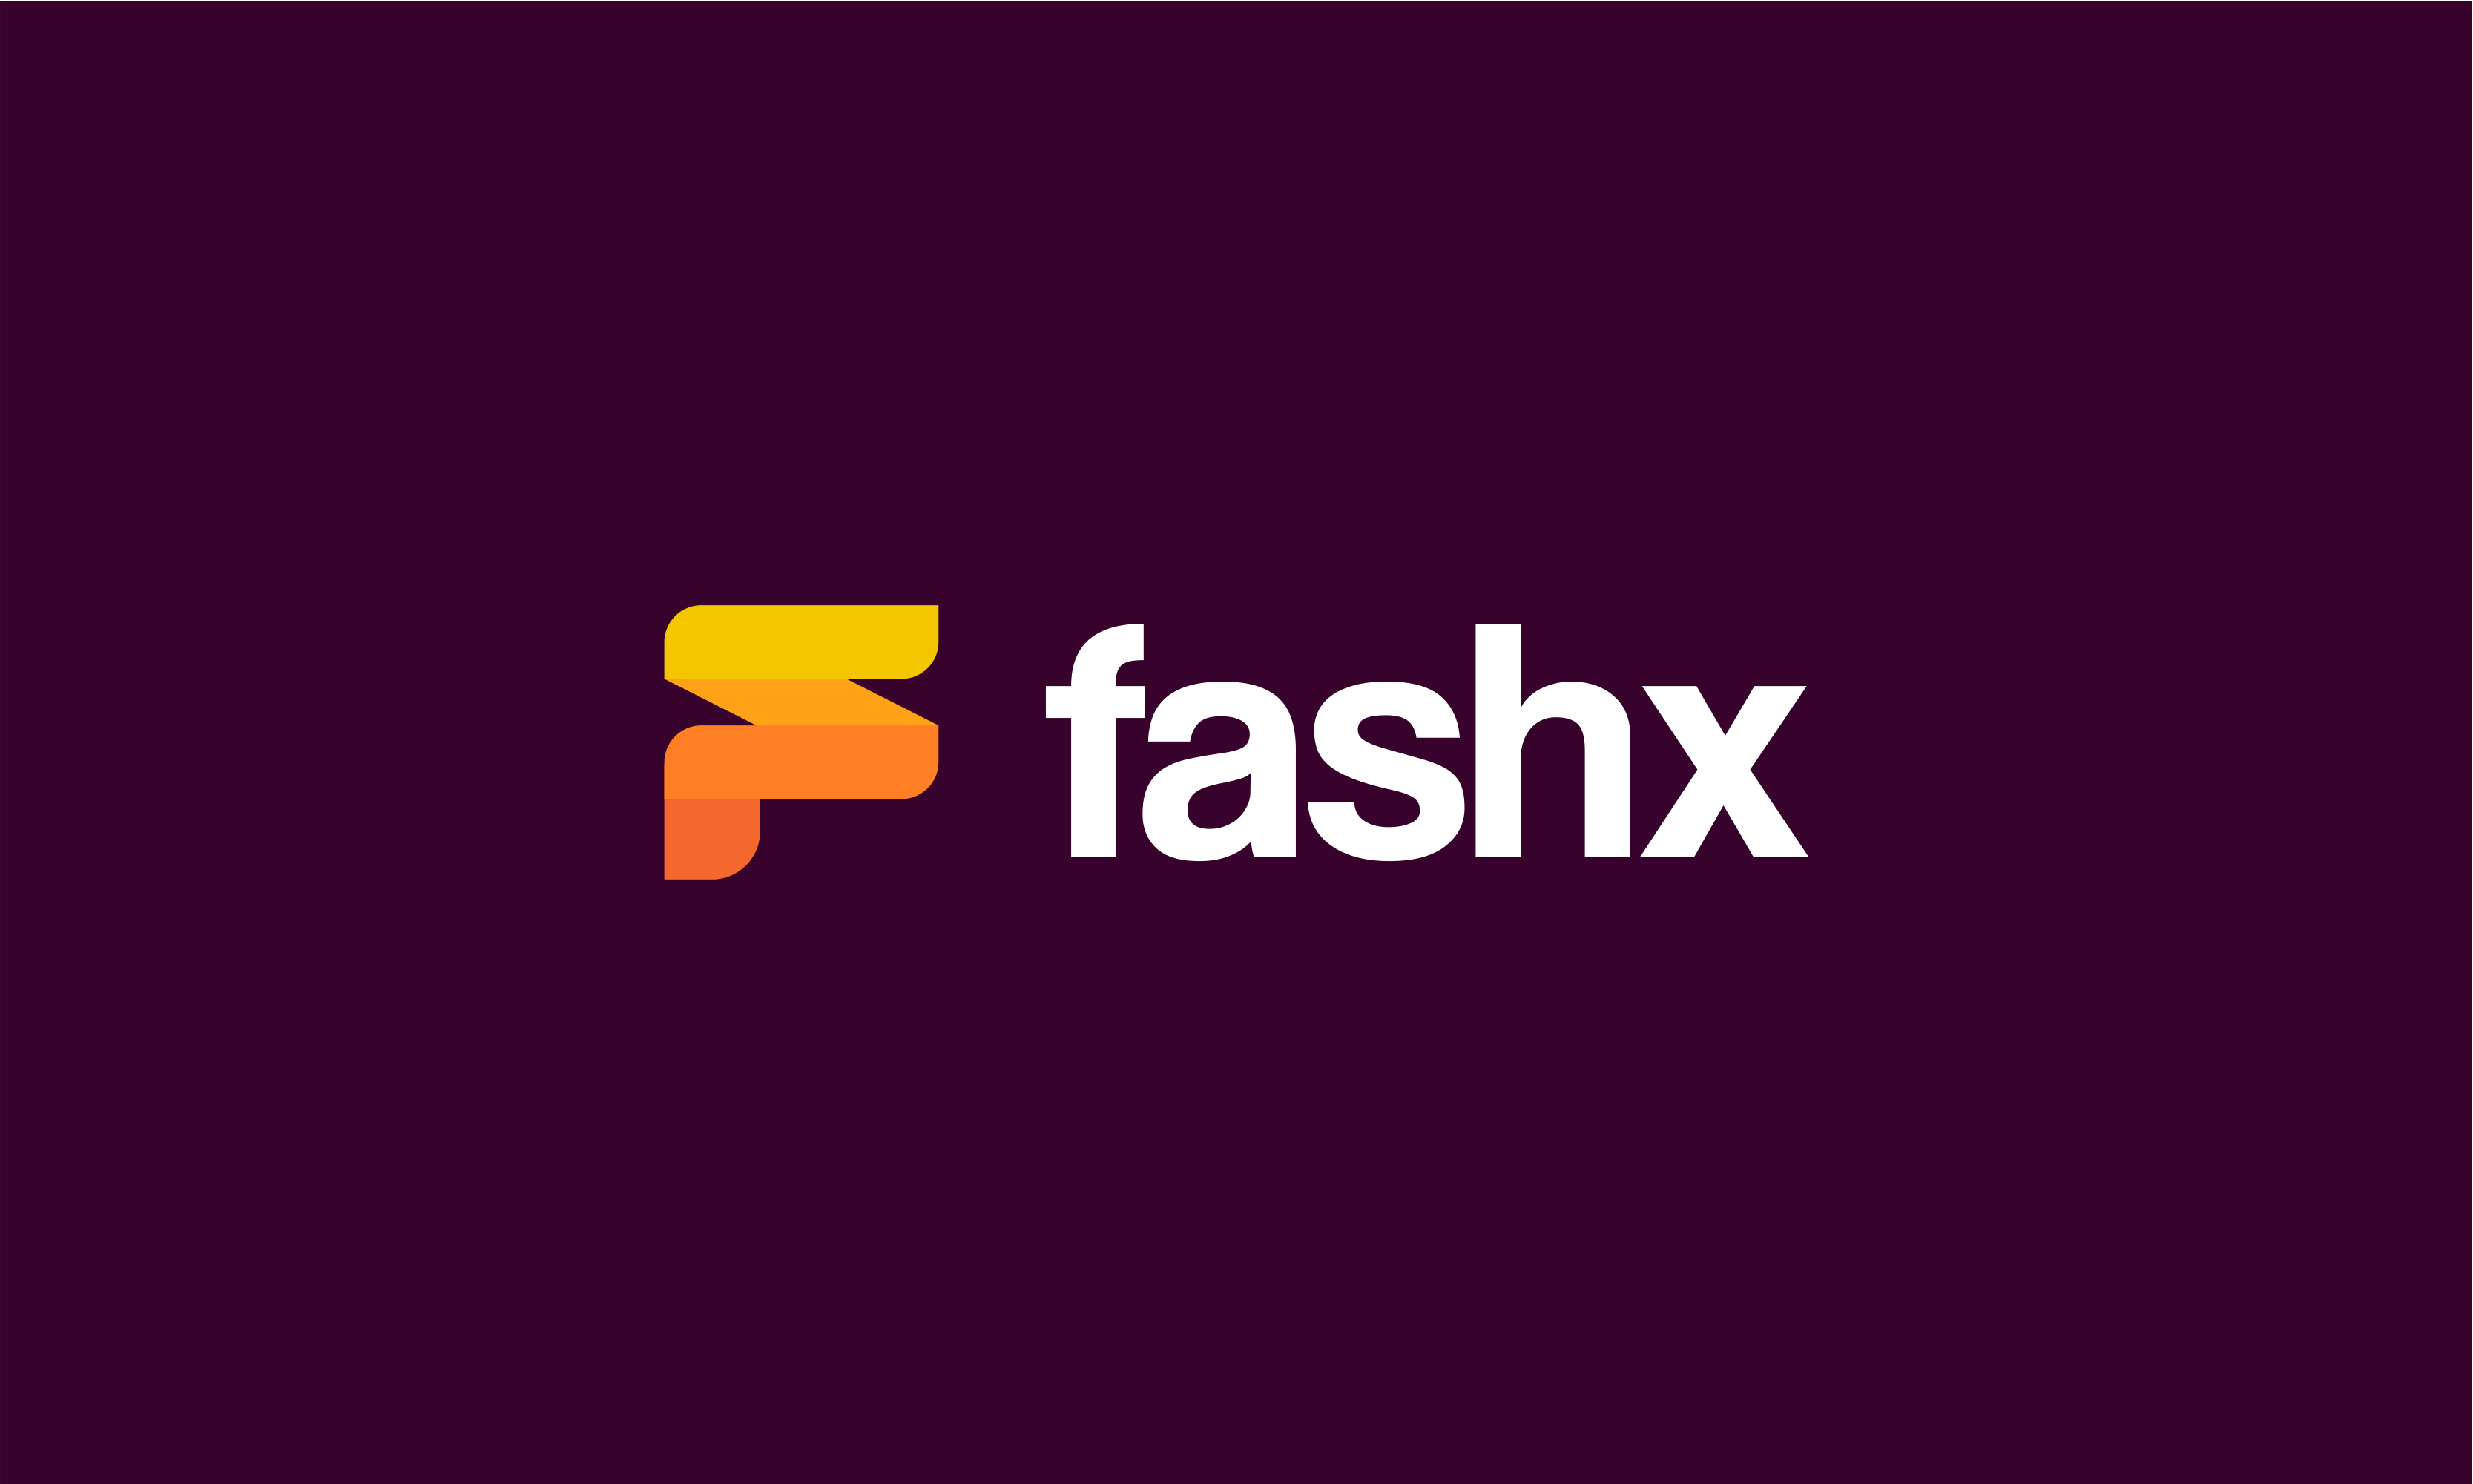 Fashx - Beauty product name for sale